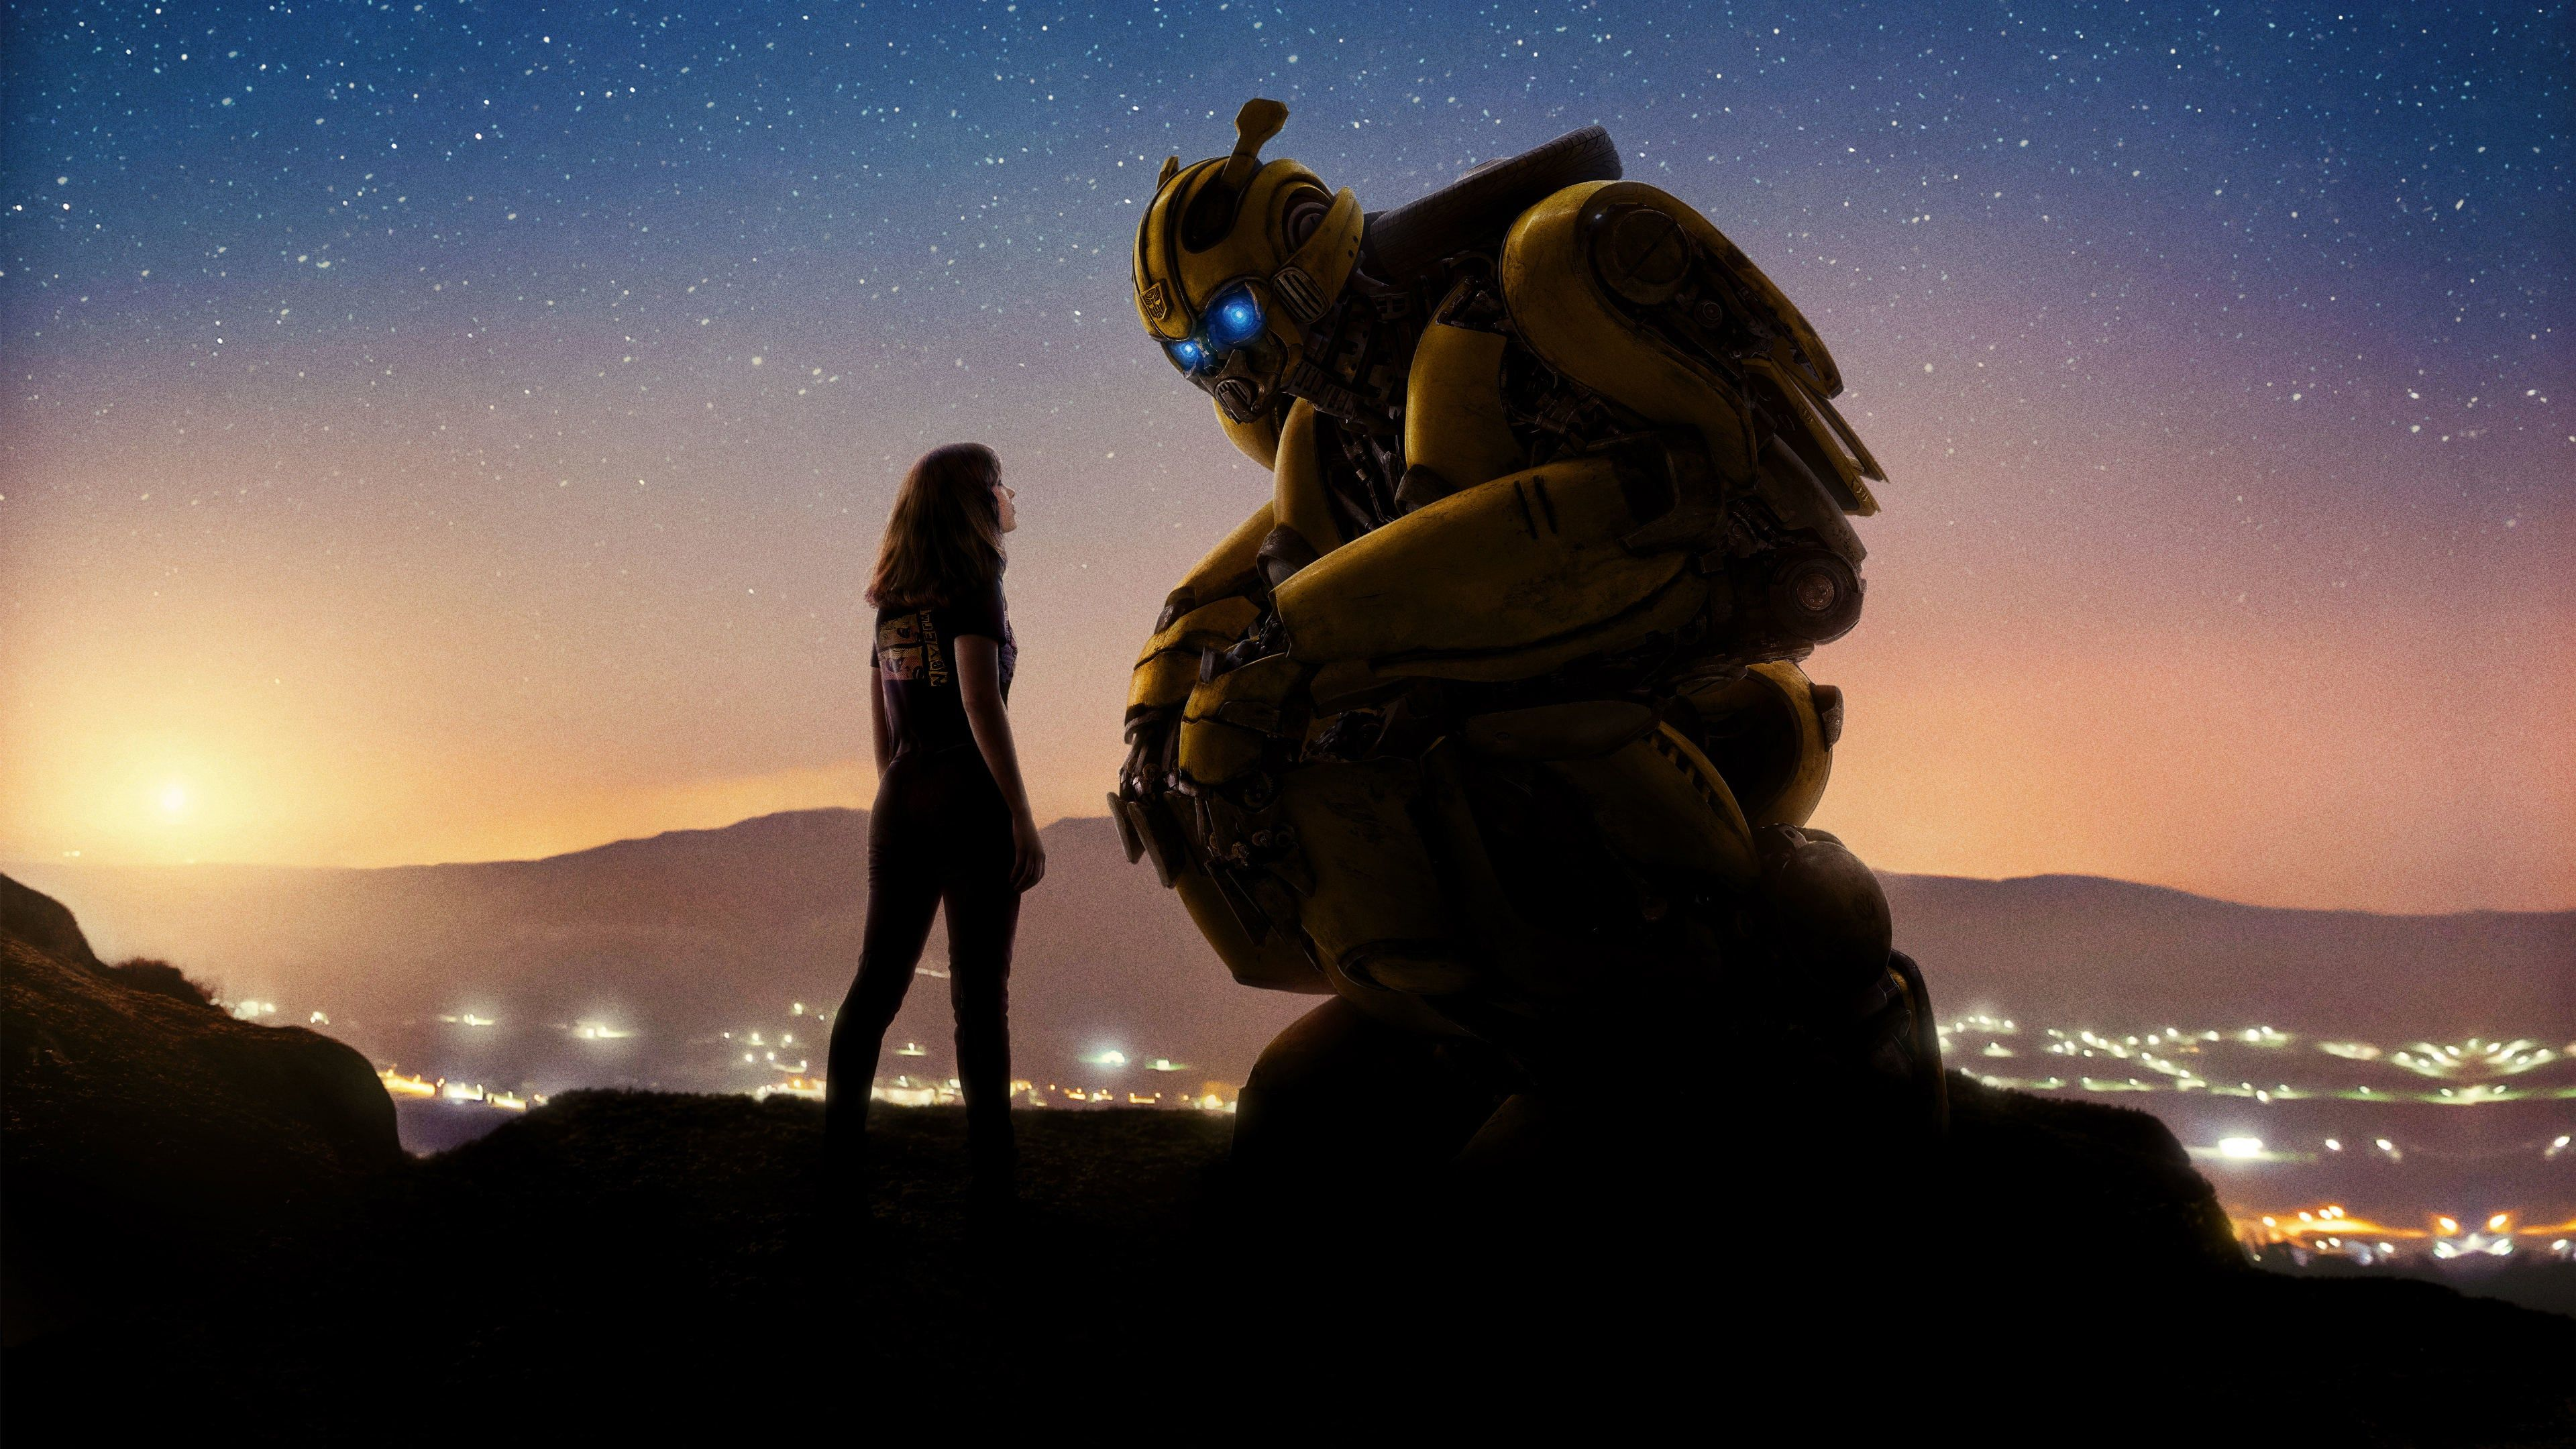 Watch Bumblebee 2018 Full Movie Online Free On The Run In The Year 1987 Bumblebee Finds Refuge In A Junkyard In A Small Californian Beach Town Wallpaper Hd